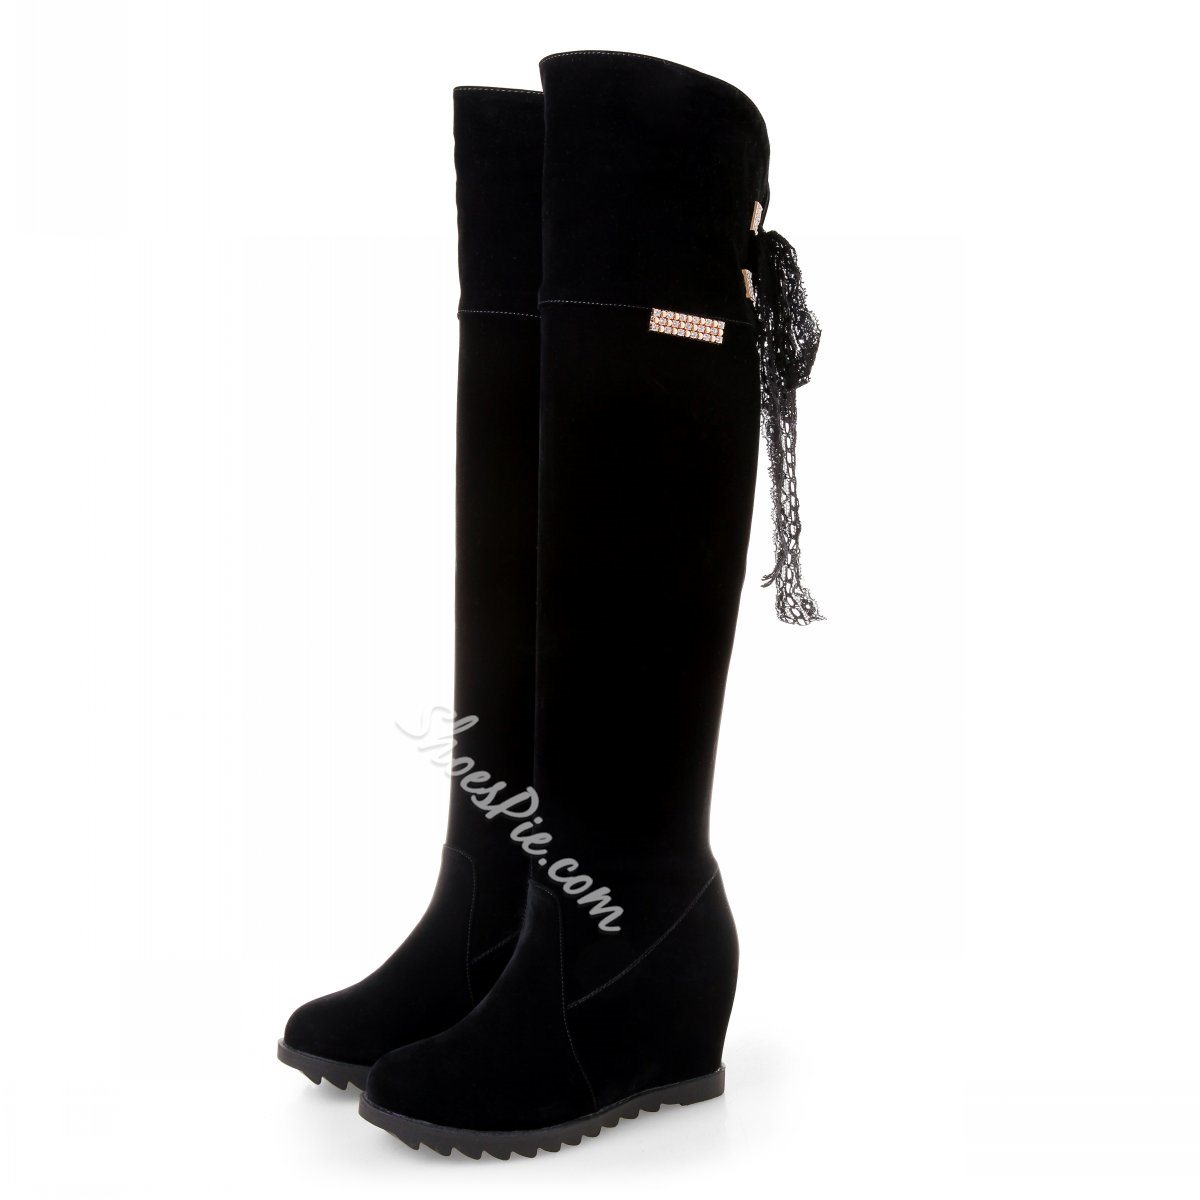 Shoespie Wedge Heel Knee High Boots